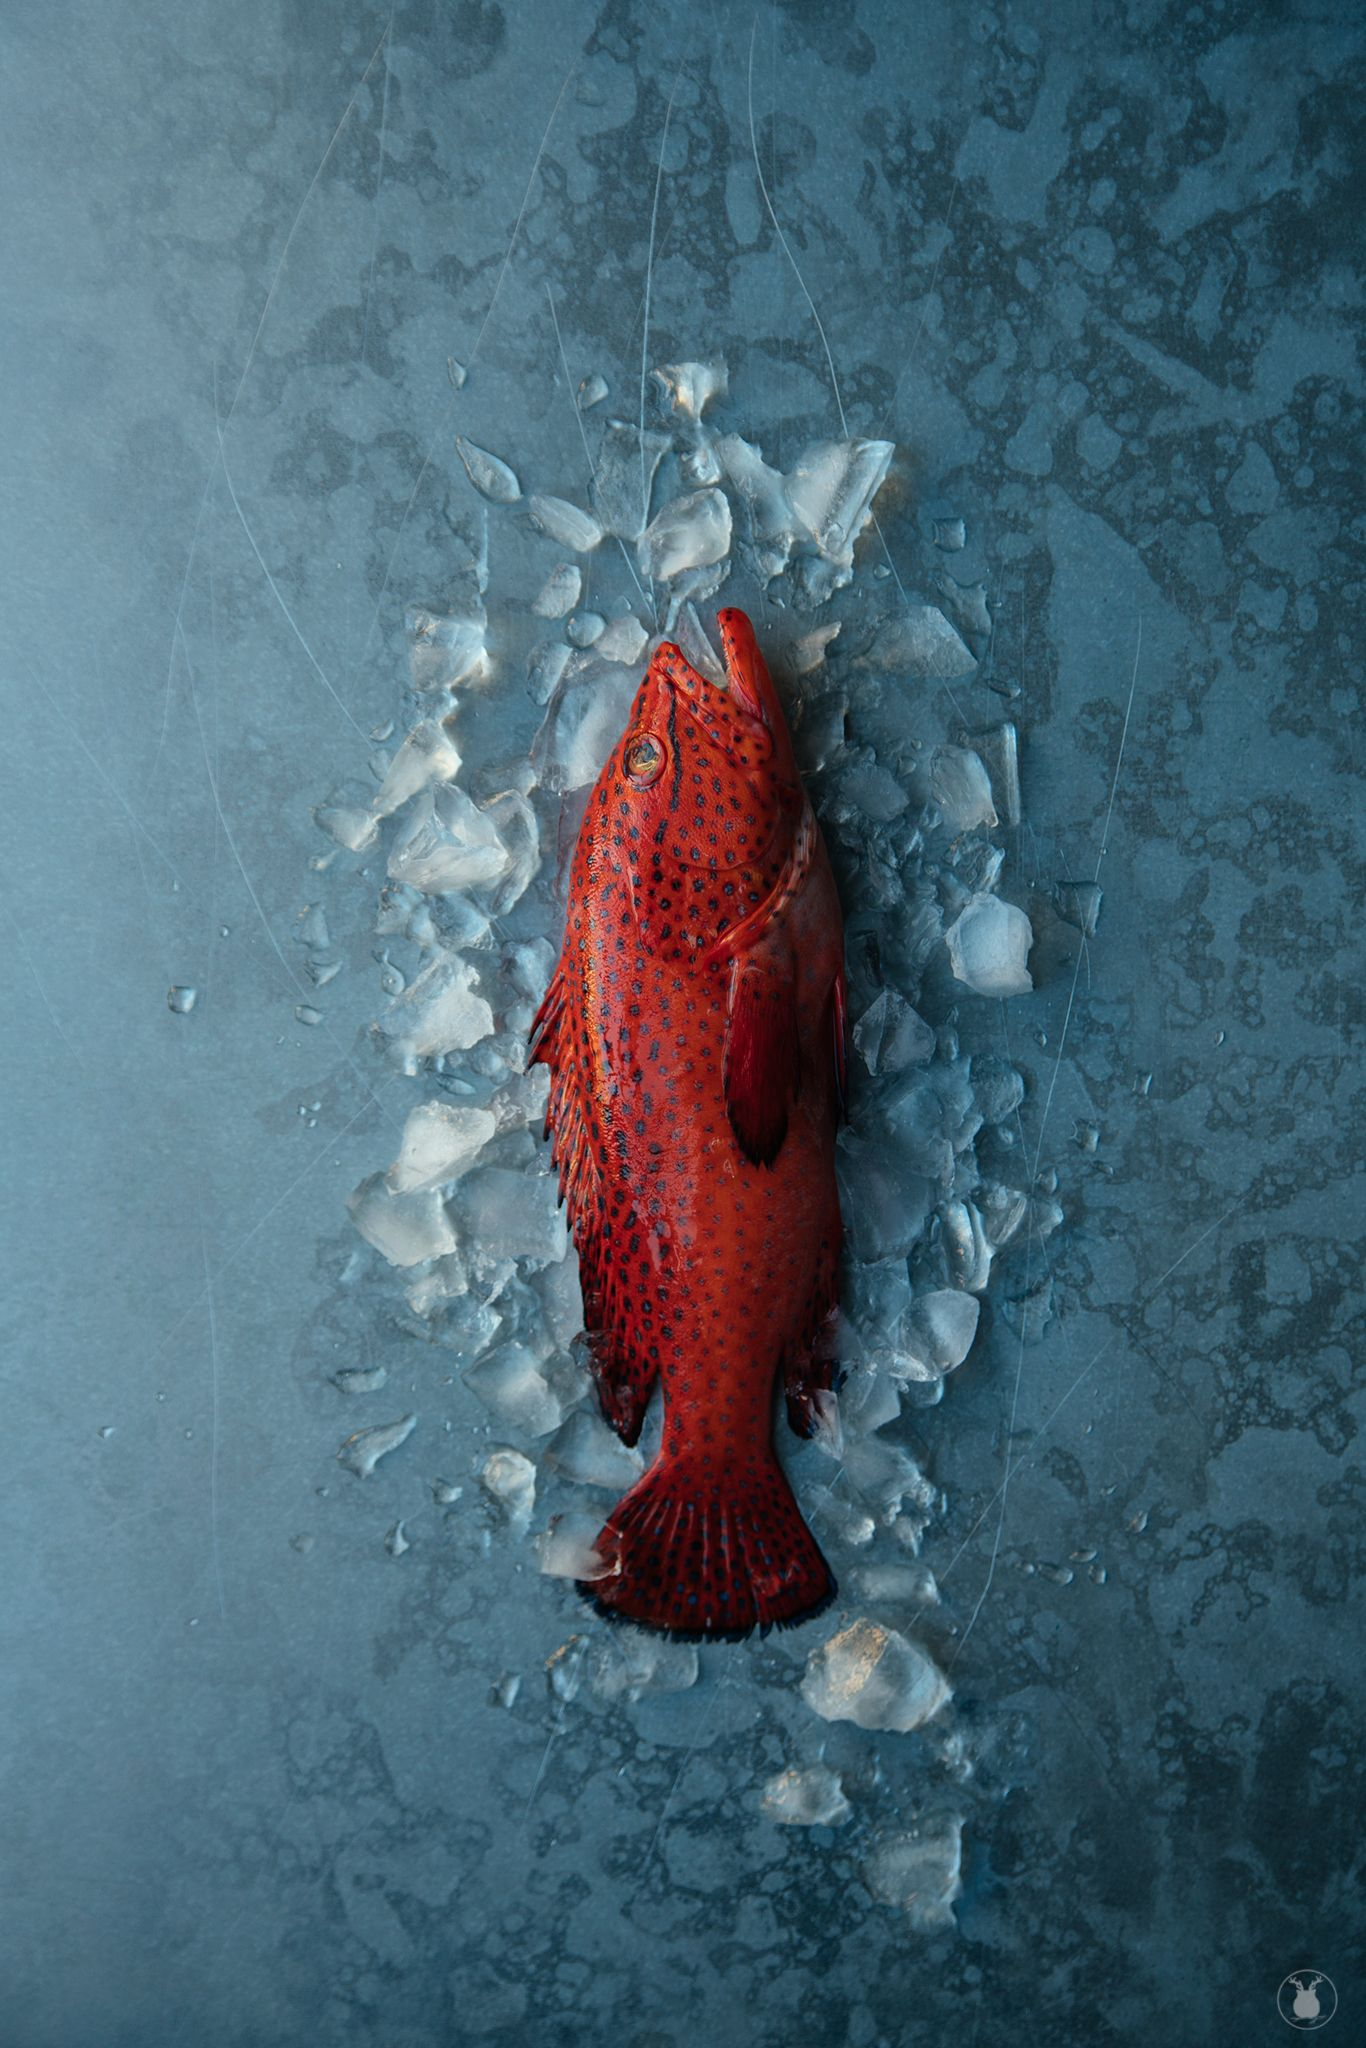 Coral trout. Fish,fresh,red. Food photography. Sasha O | Owl\'s ...